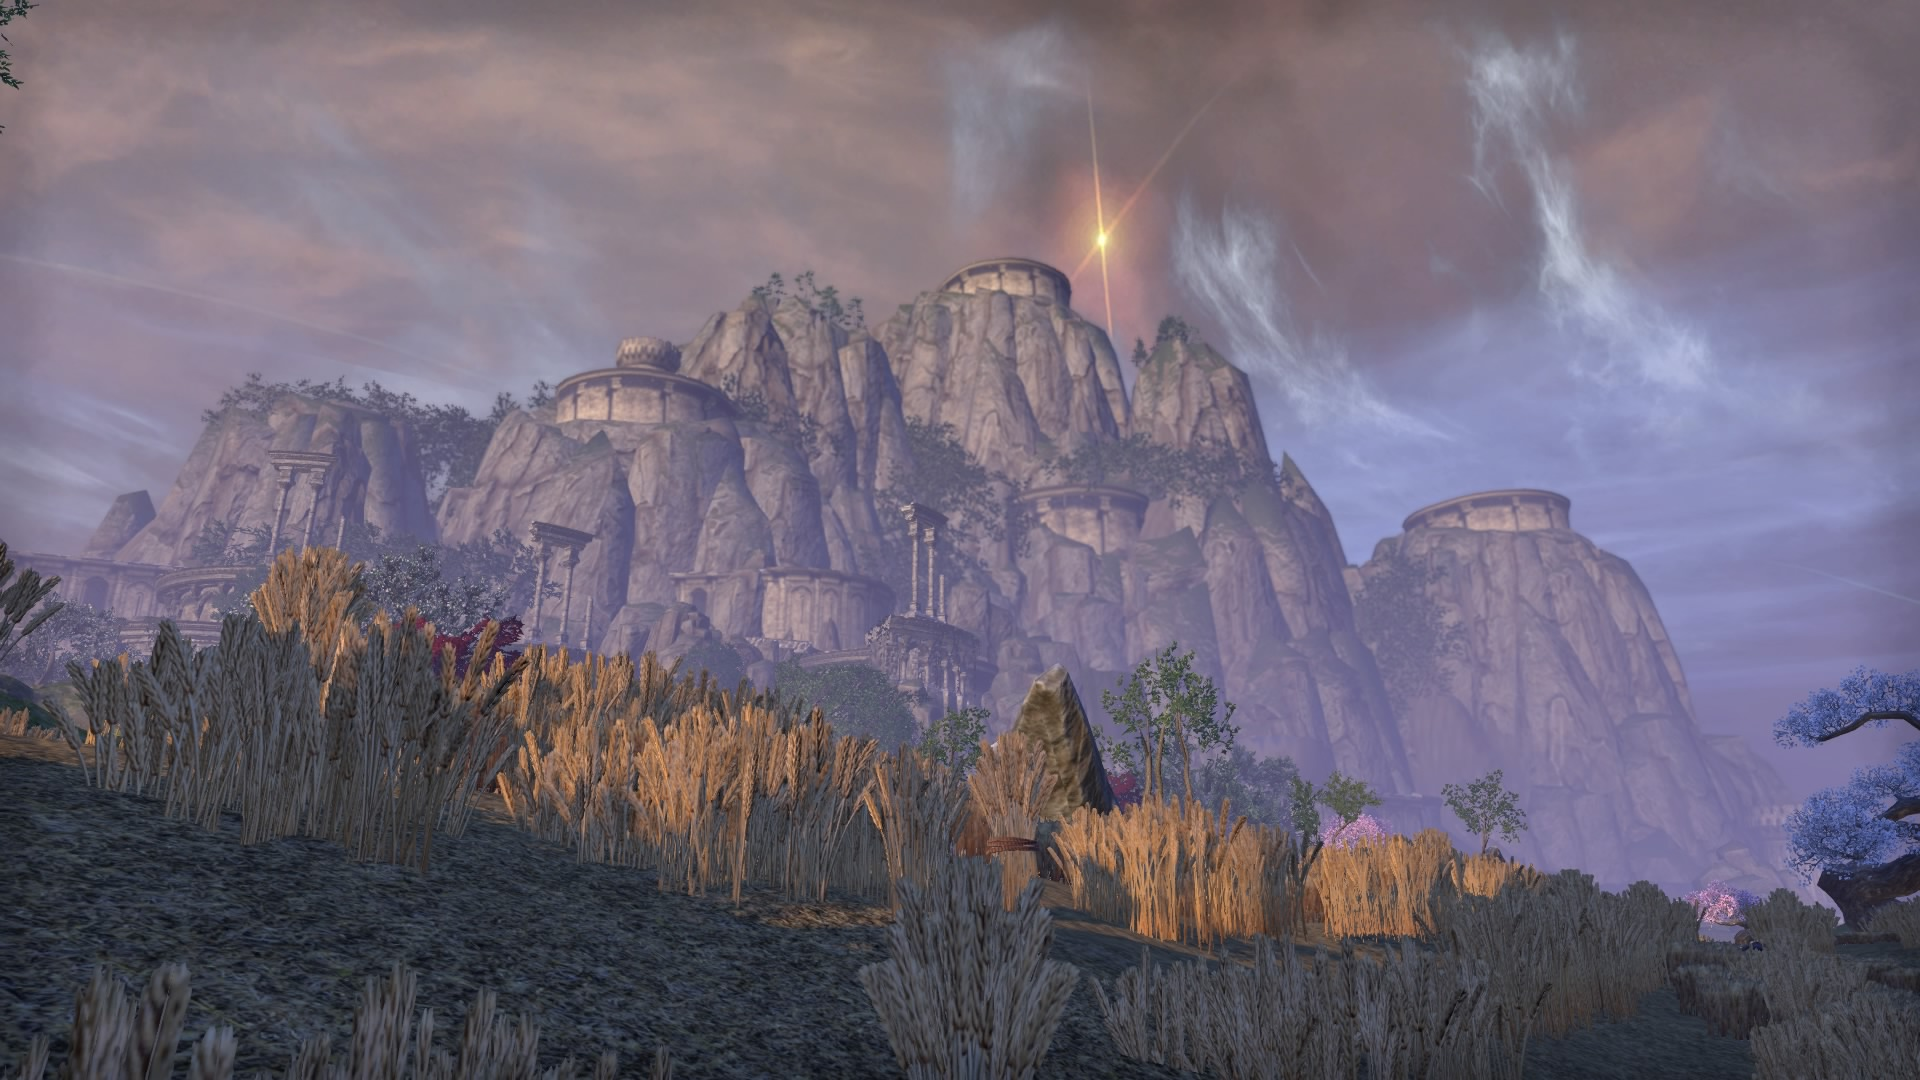 The view from outside the Ceporah tower